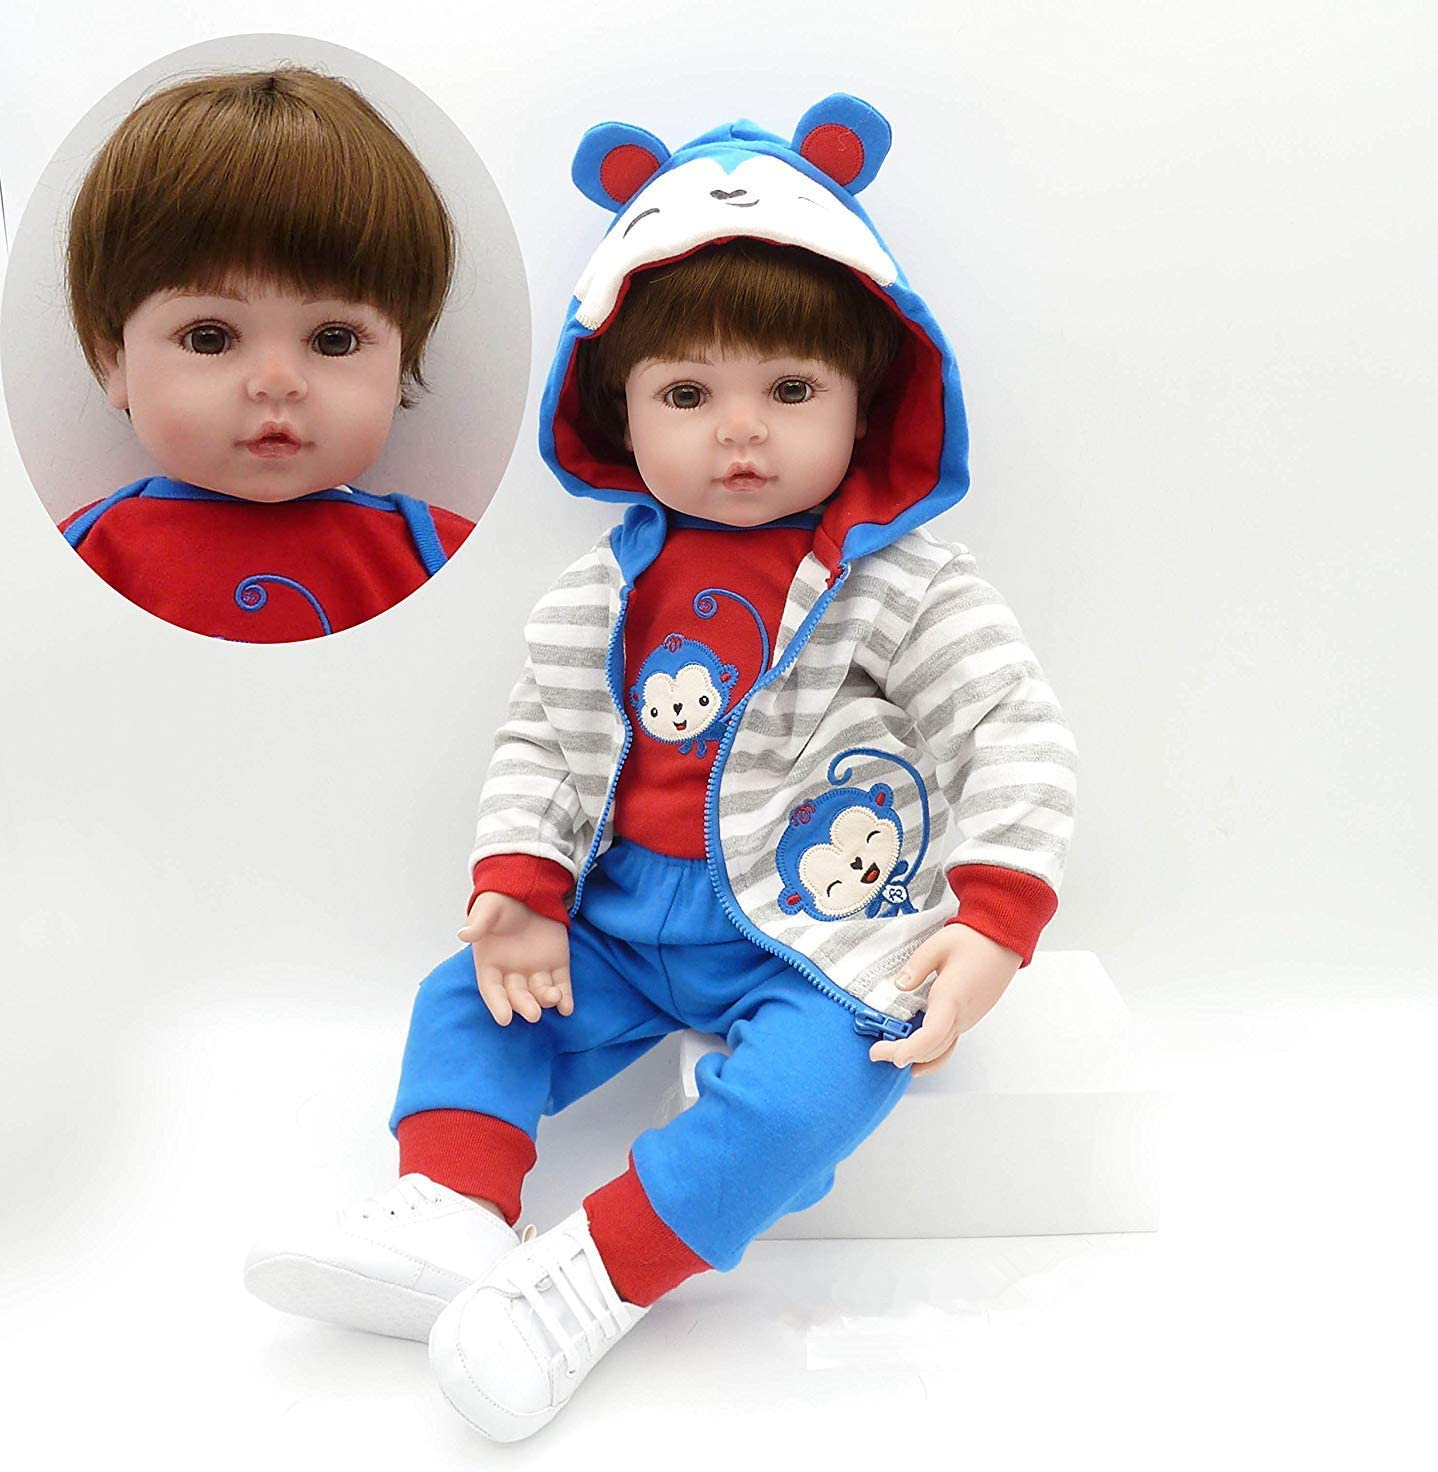 Inventory cleanup selling sale Lifelike Reborn Toddler Max 42% OFF Boy 22 inch Silicone Doll Bro Vinyl Baby